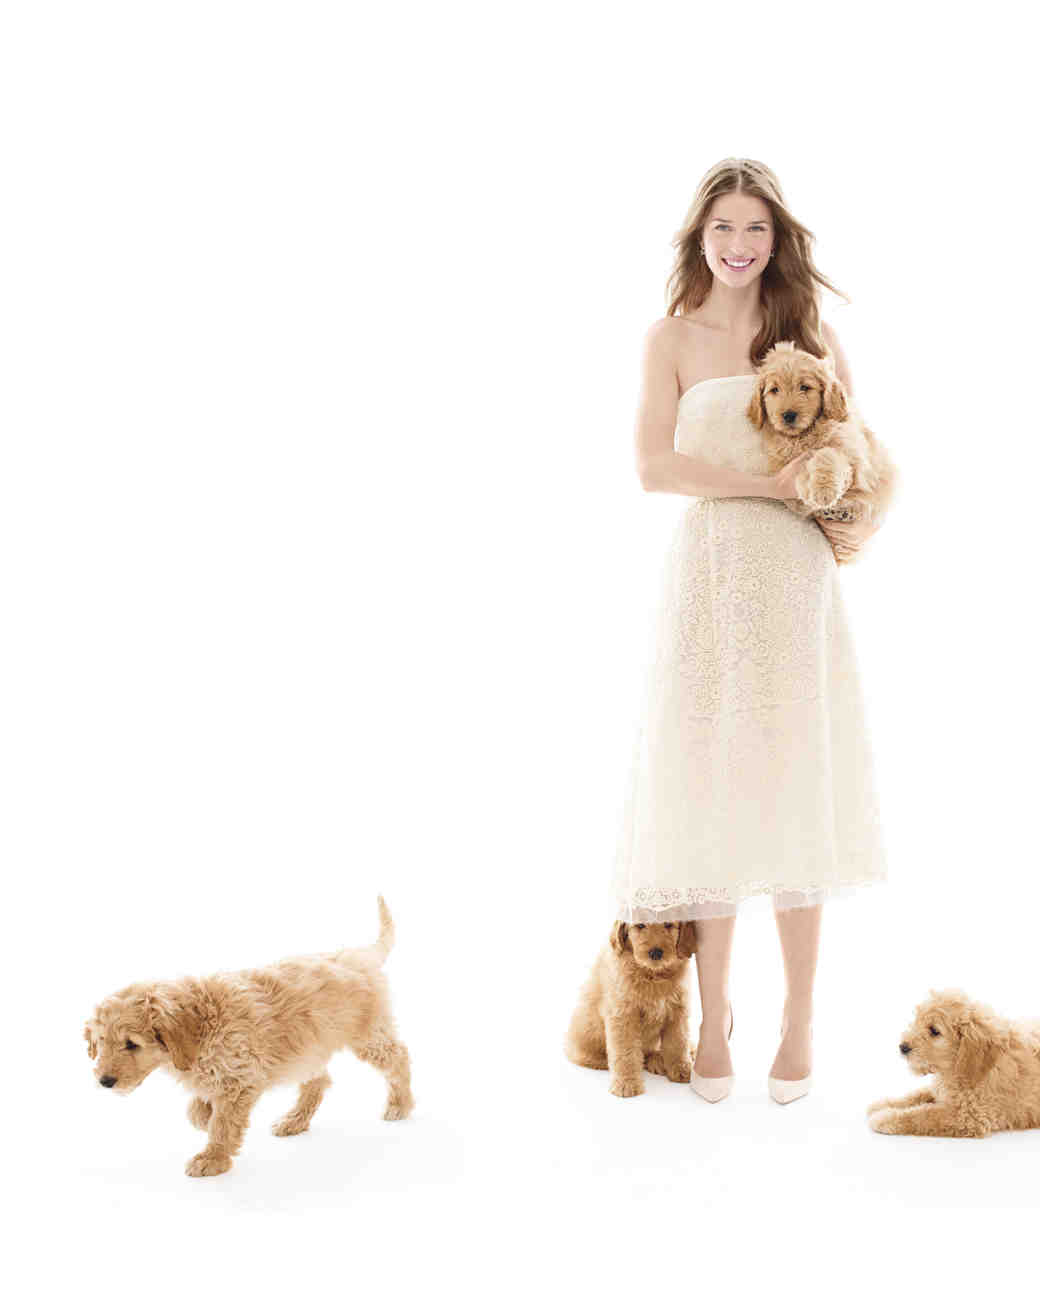 puppies-wedding-dress-124-d111904-comp.jpg